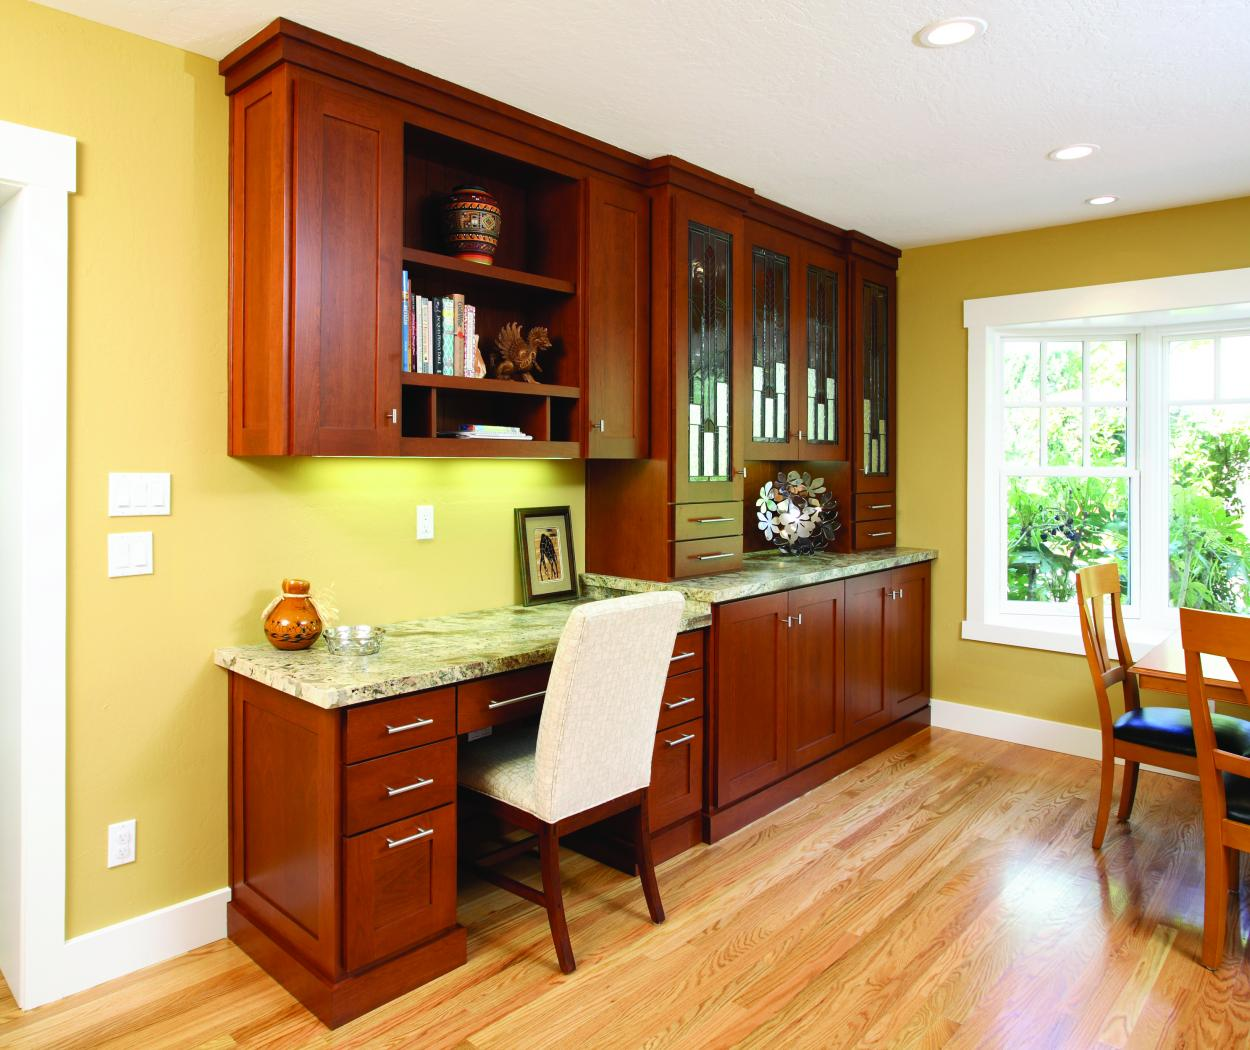 Transitional Stained Built-In Desk with Decorative Glass Doors, Open Shelves and a Beautiful Granite Countertop